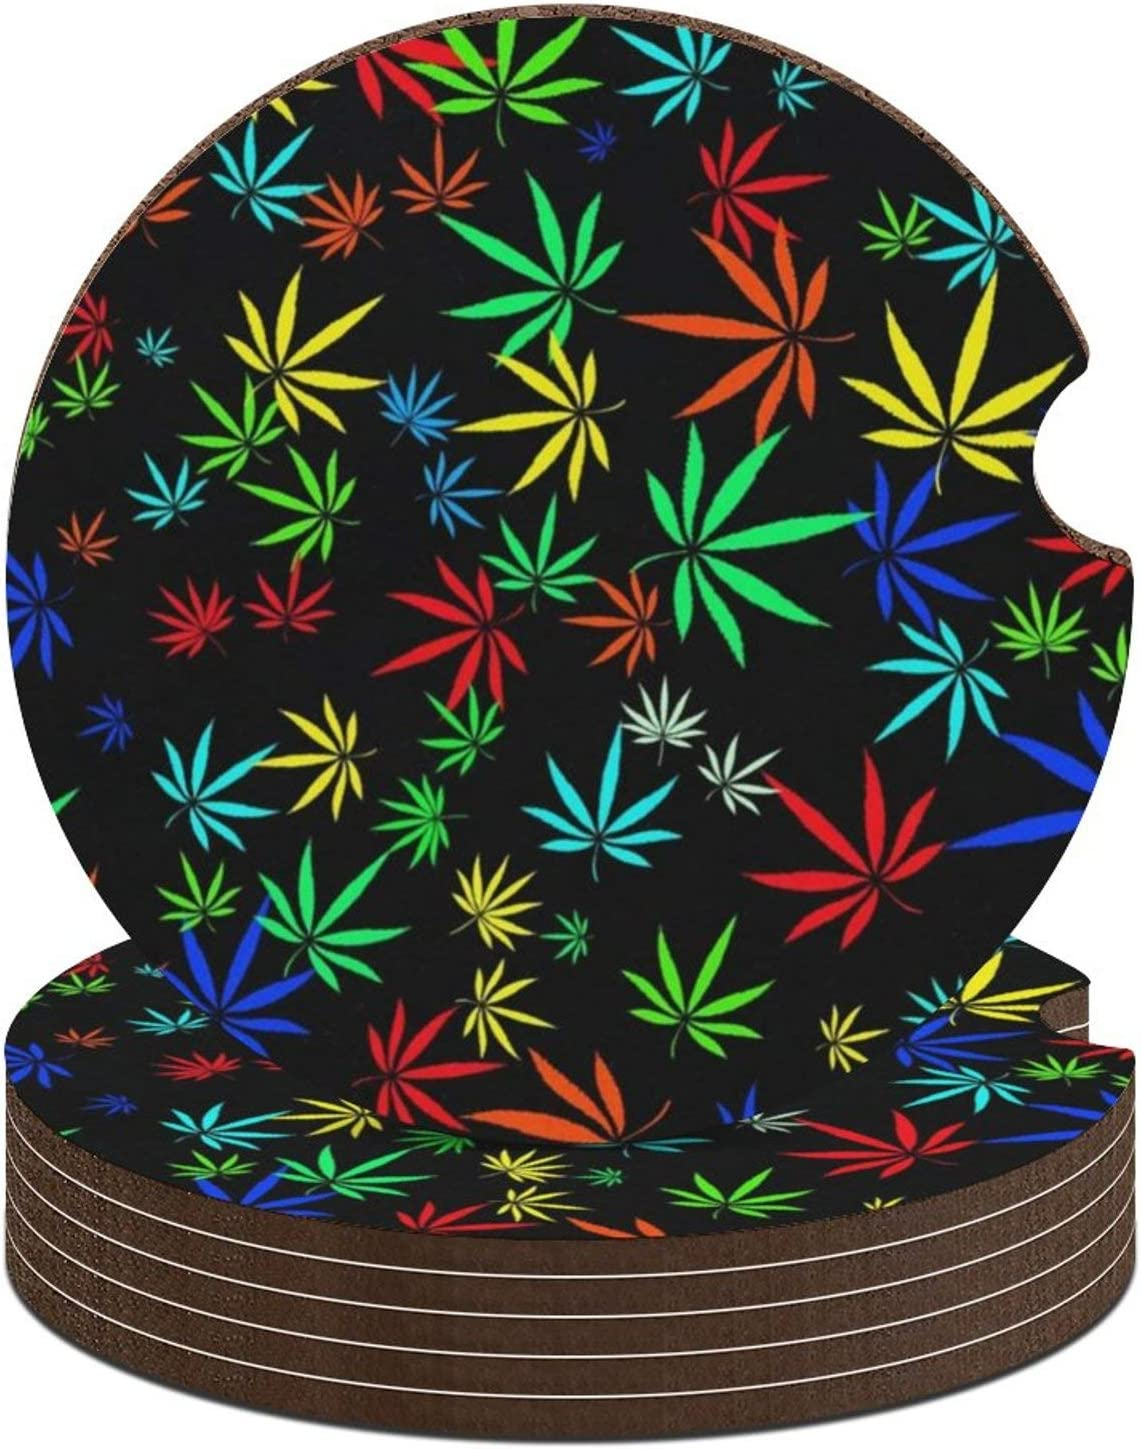 Car Coasters Car Cup Holder Coasters Absorbent Ceramic Coasters for Car 2.6 inch Colorful Marijuana Leaf of Cannabis Pattern for Women and Men (Set of 6)